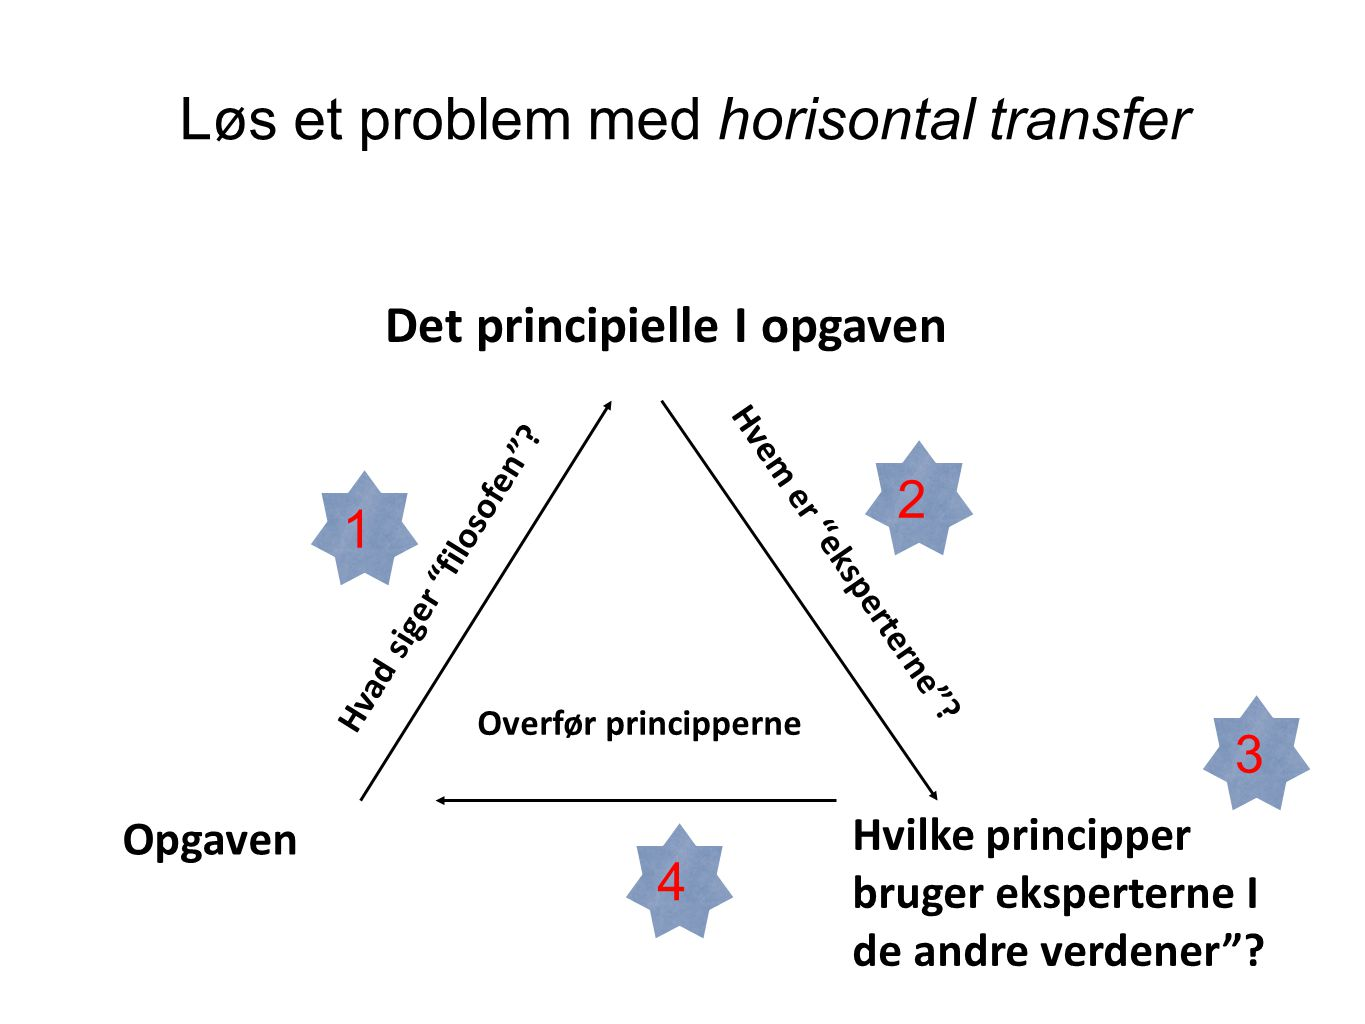 Løs et problem med horisontal transfer